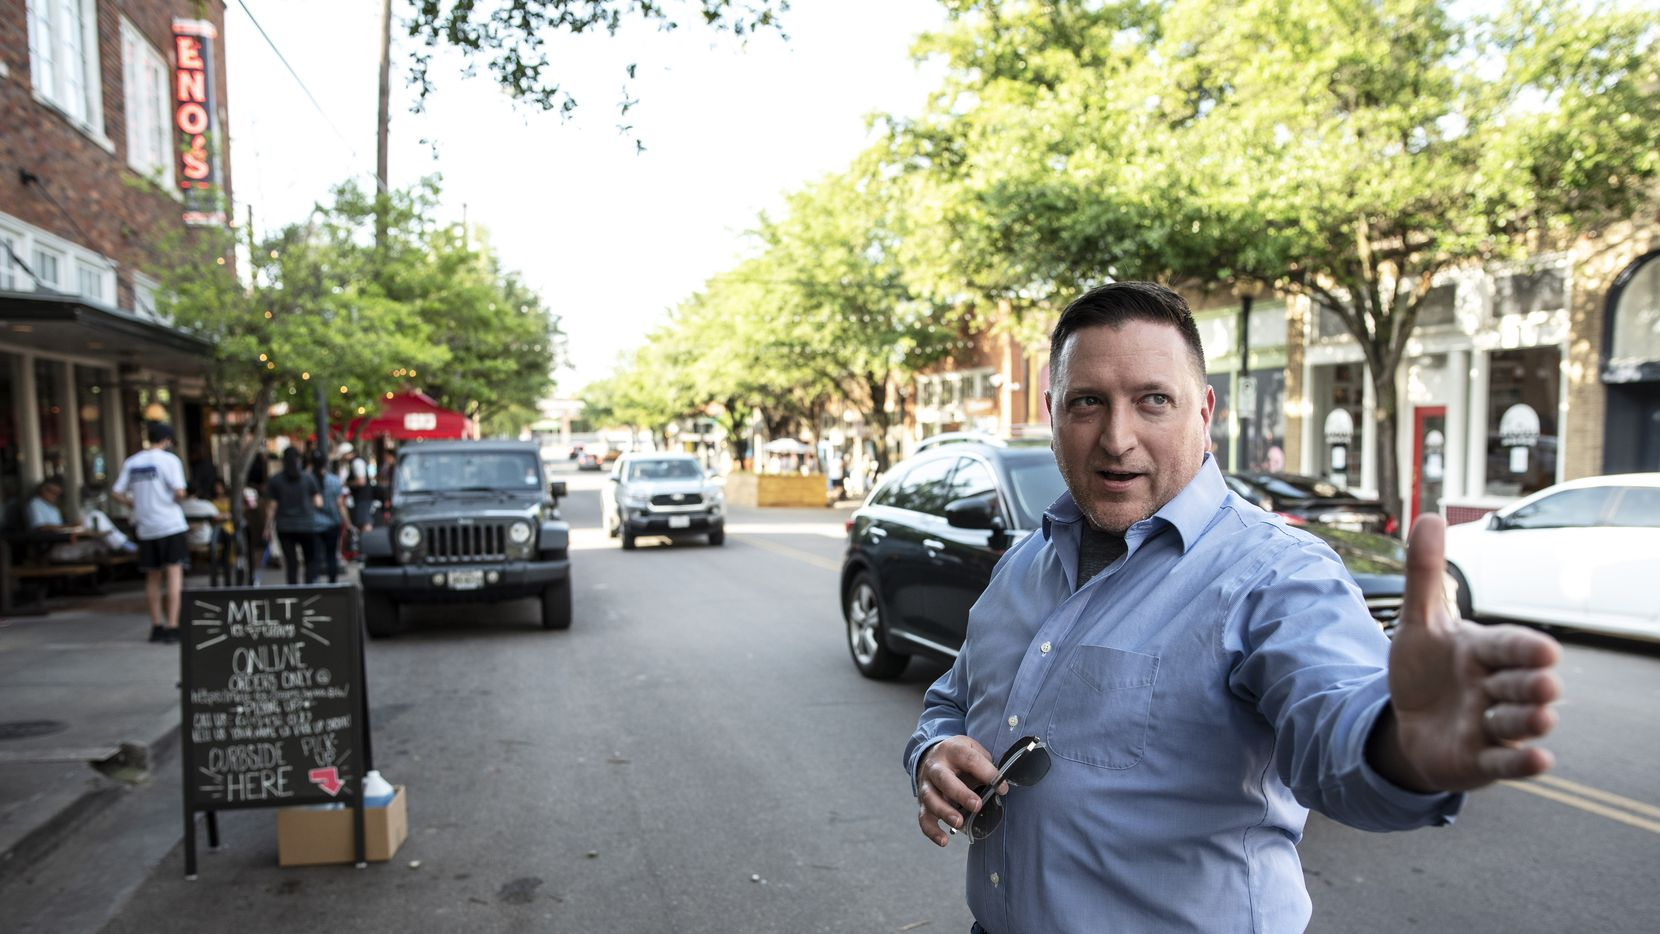 Shane Spillers, co-owner of Eno's Pizza Tavern, explains where he plans to have a parklet outside of his business on Bishop Avenue in Dallas, Friday, May 15, 2020. The city will offer permits for temporary parklets, or outdoor seating areas that spill onto streets where cars would normally park.